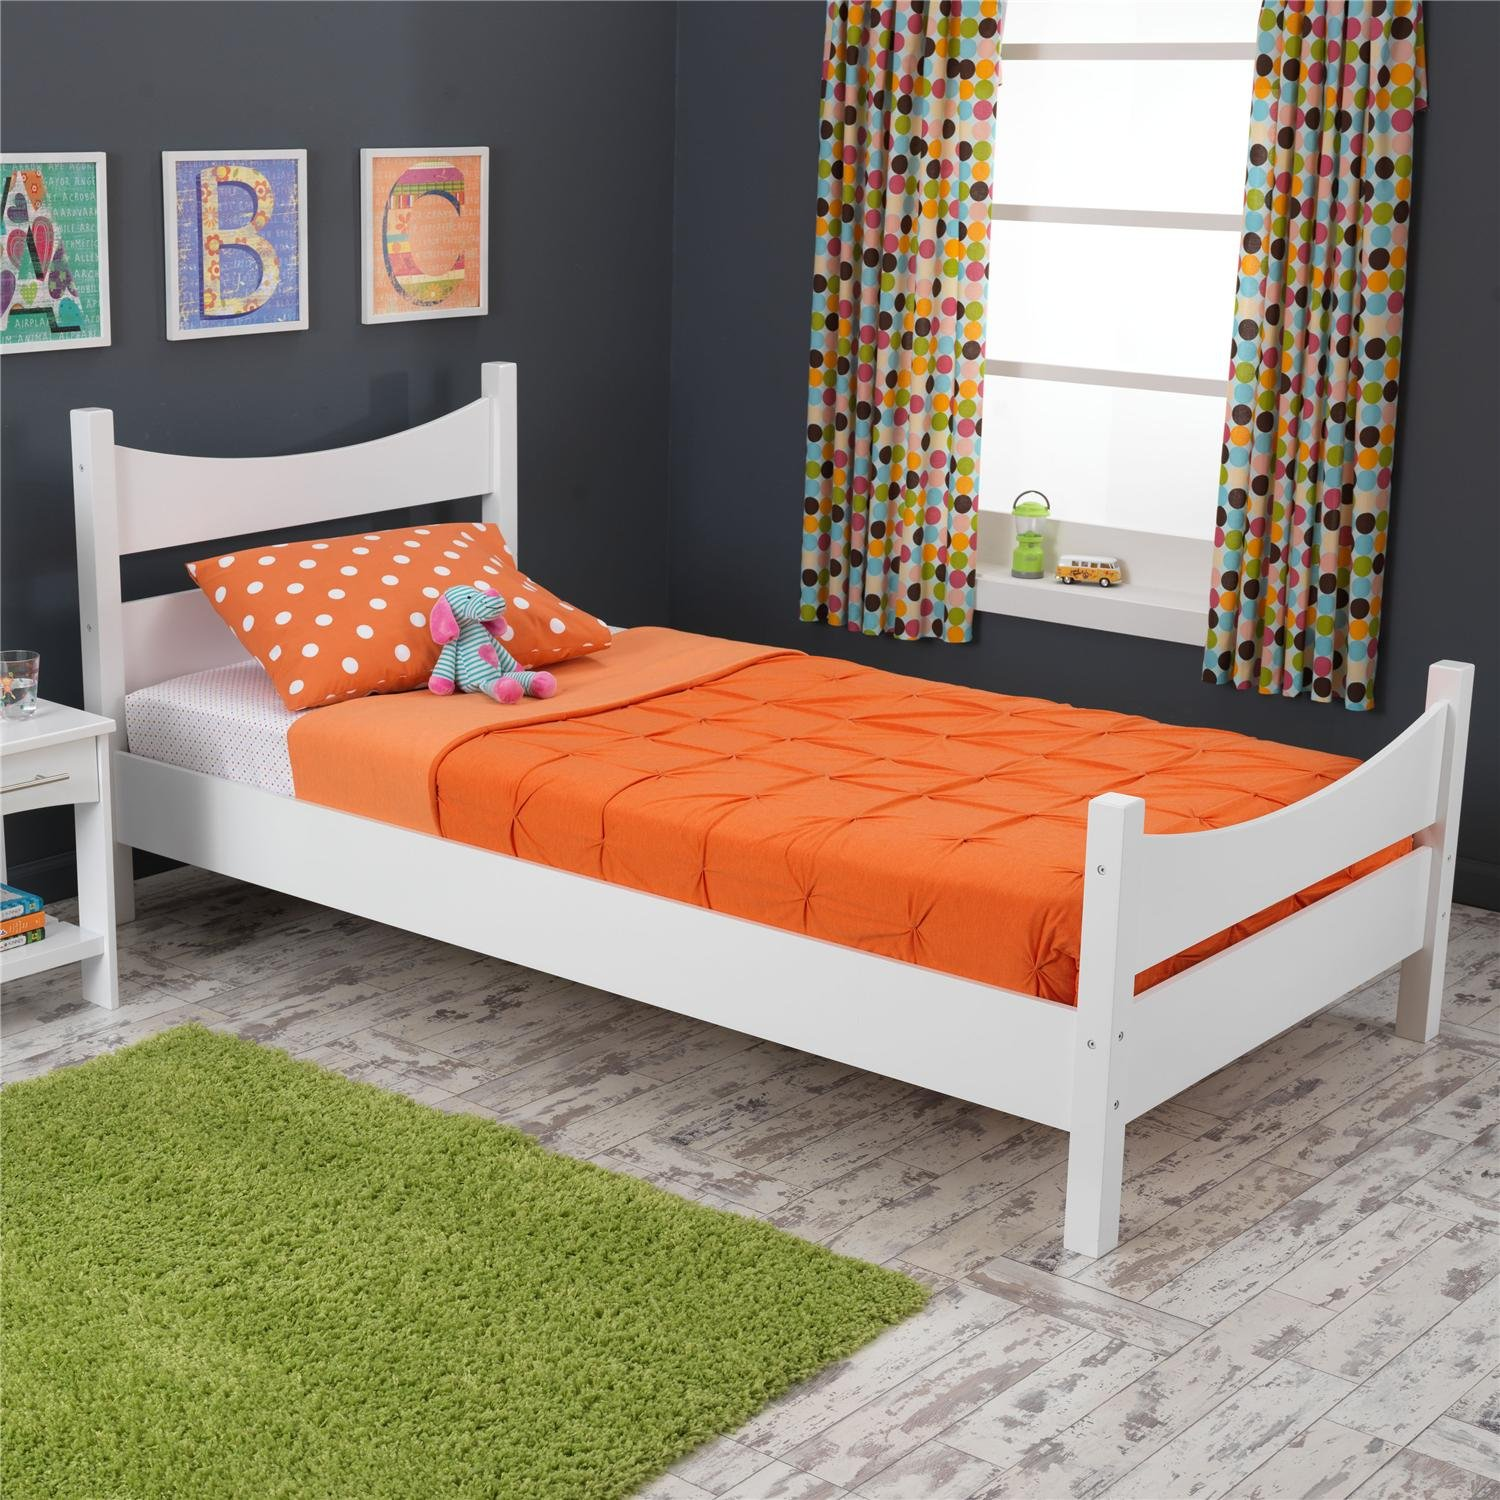 amazoncom kidkraft addison twin bed white toys  games -